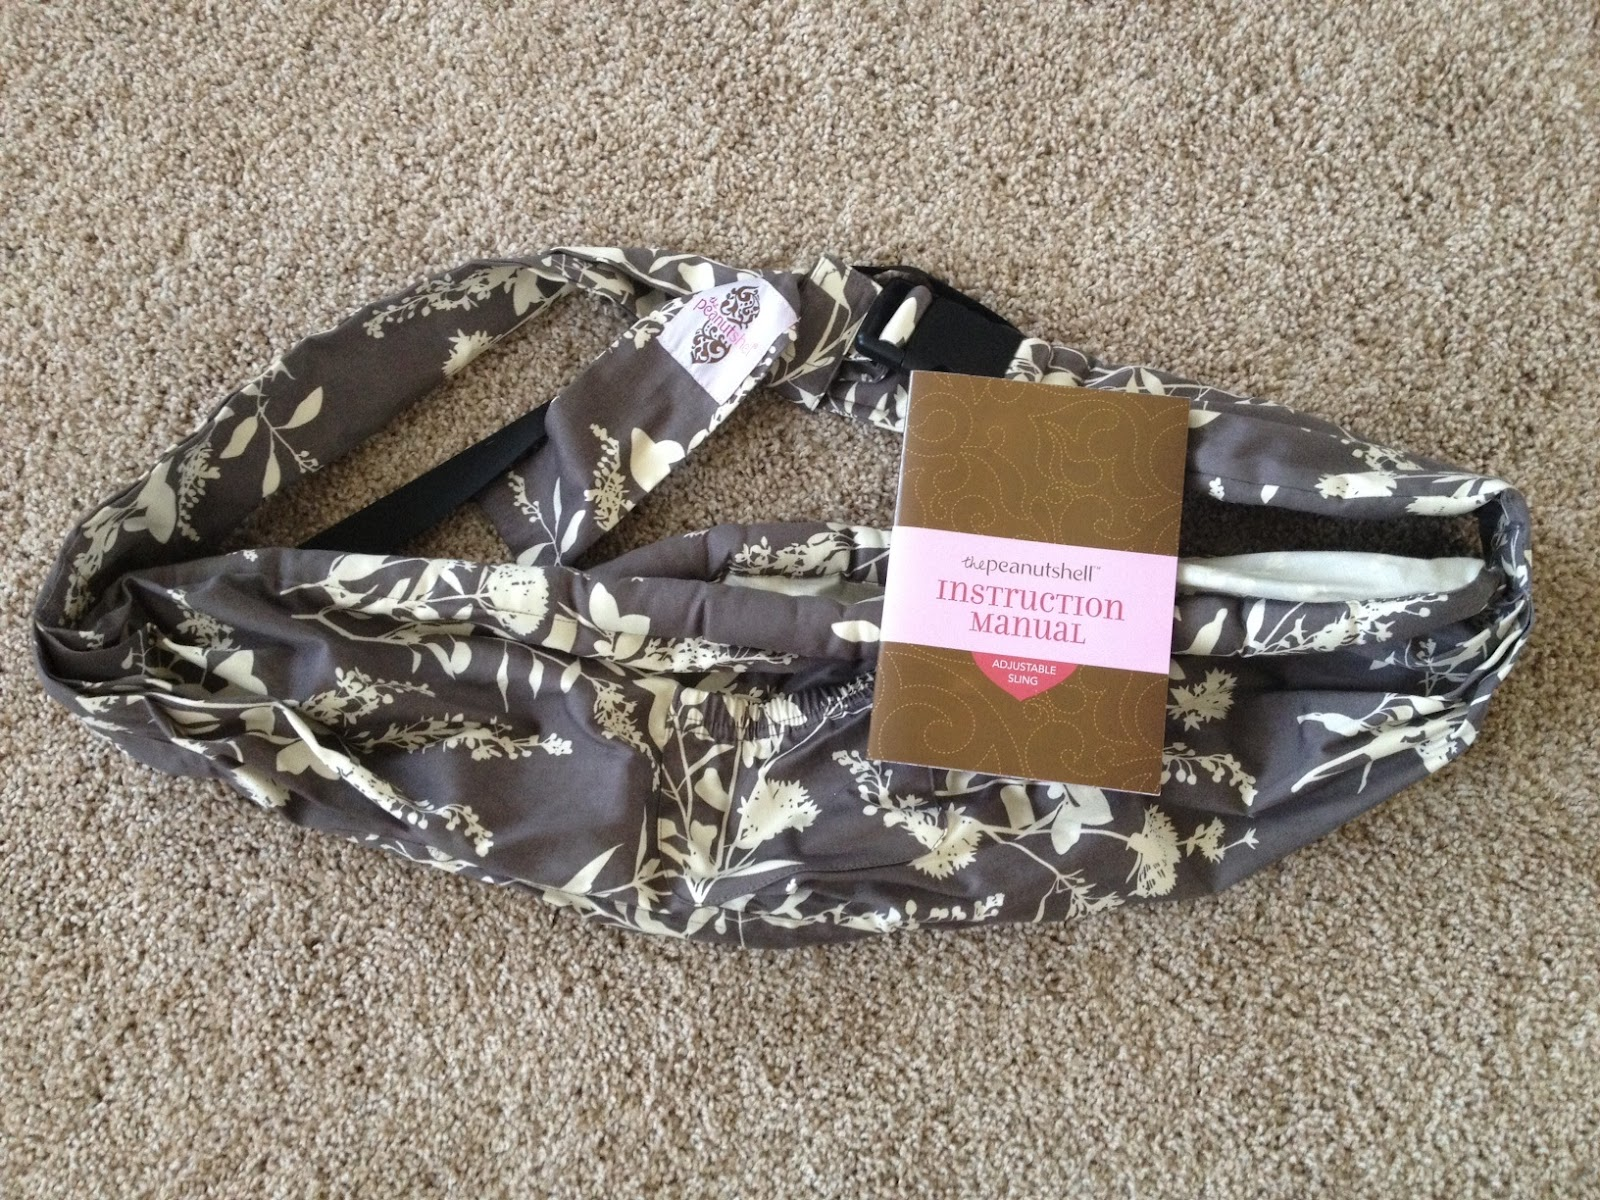 the peanut shell adjustable sling review and giveaway  modernly  - the peanut shell adjustable sling review and giveaway  modernly morgan